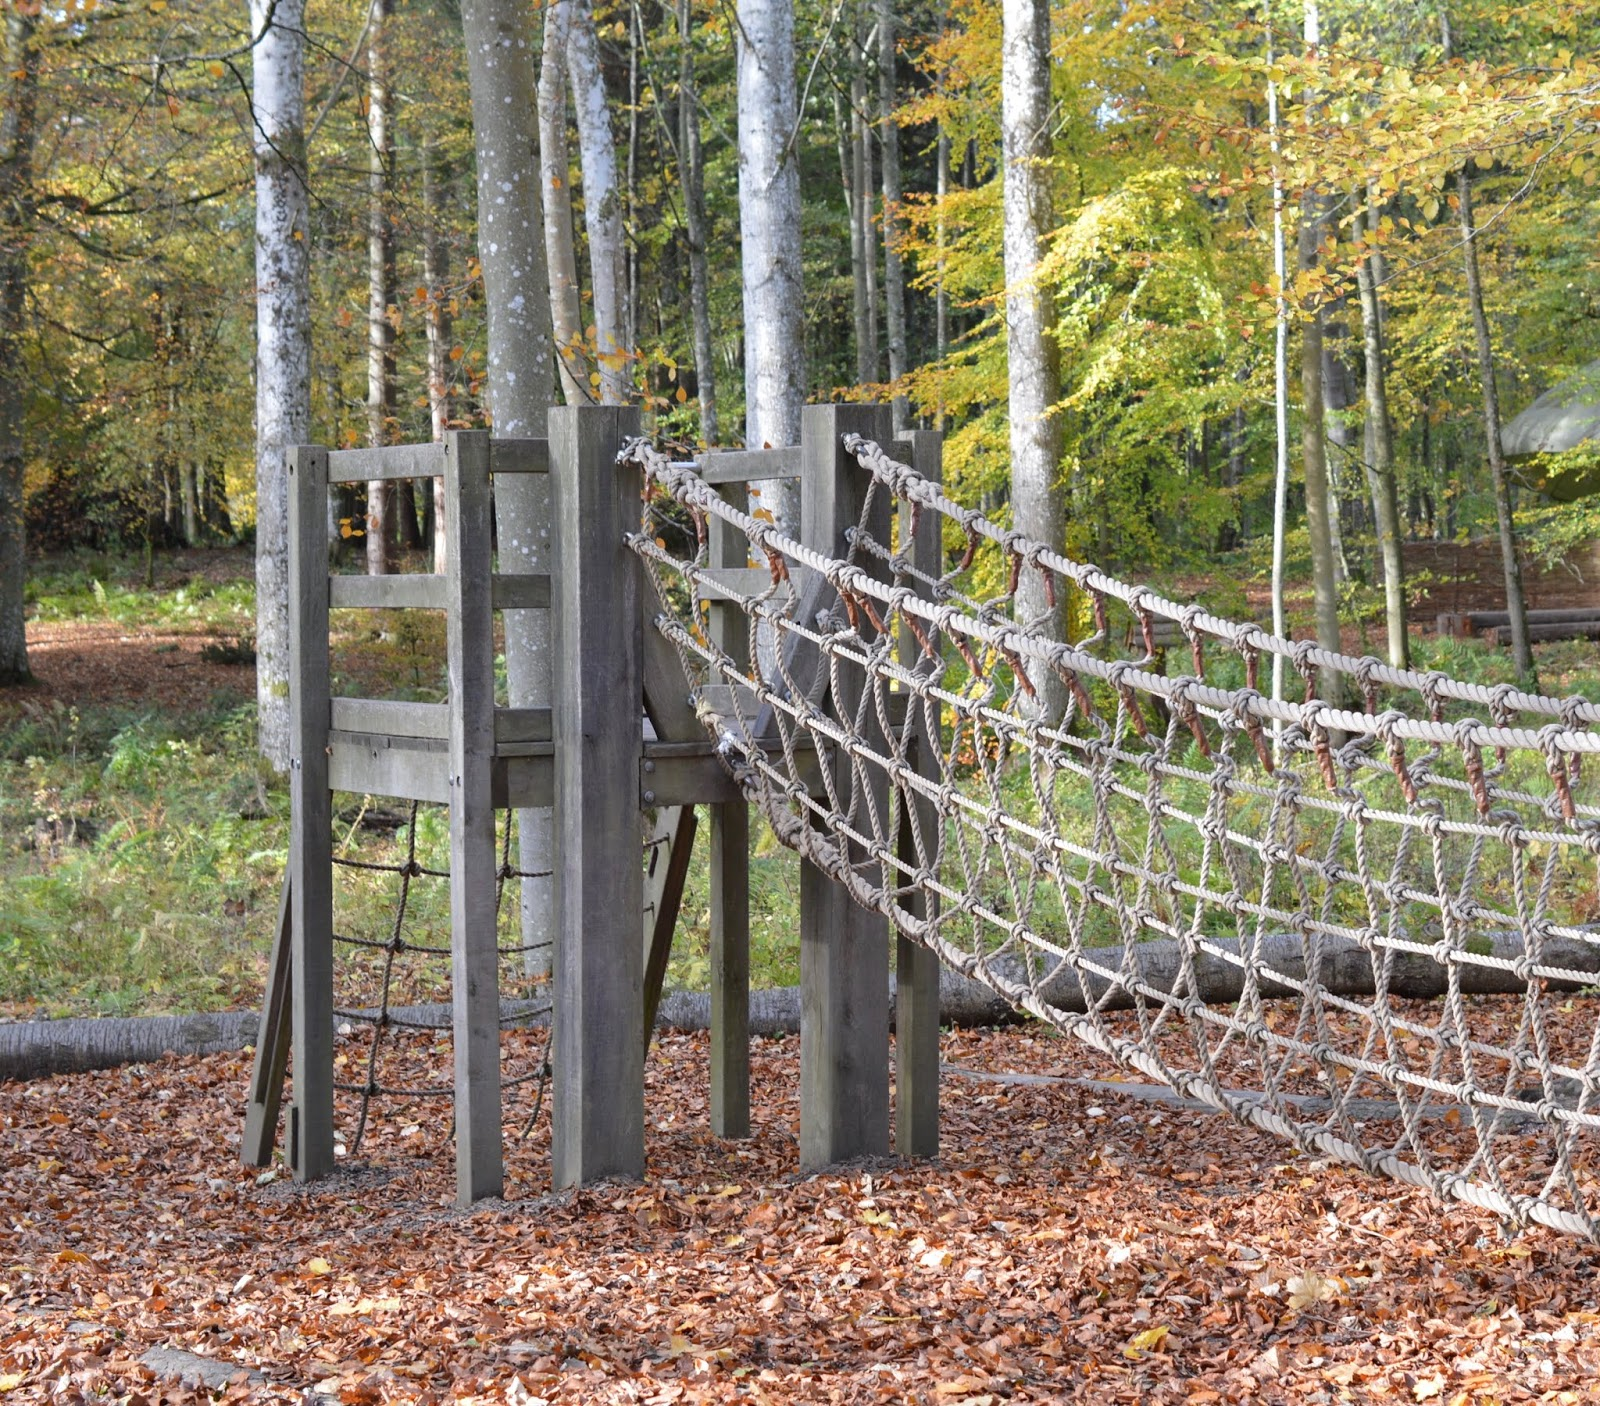 Visiting the Adventure Playground & Outdoor Play Areas at Wallington Hall  - climbing net